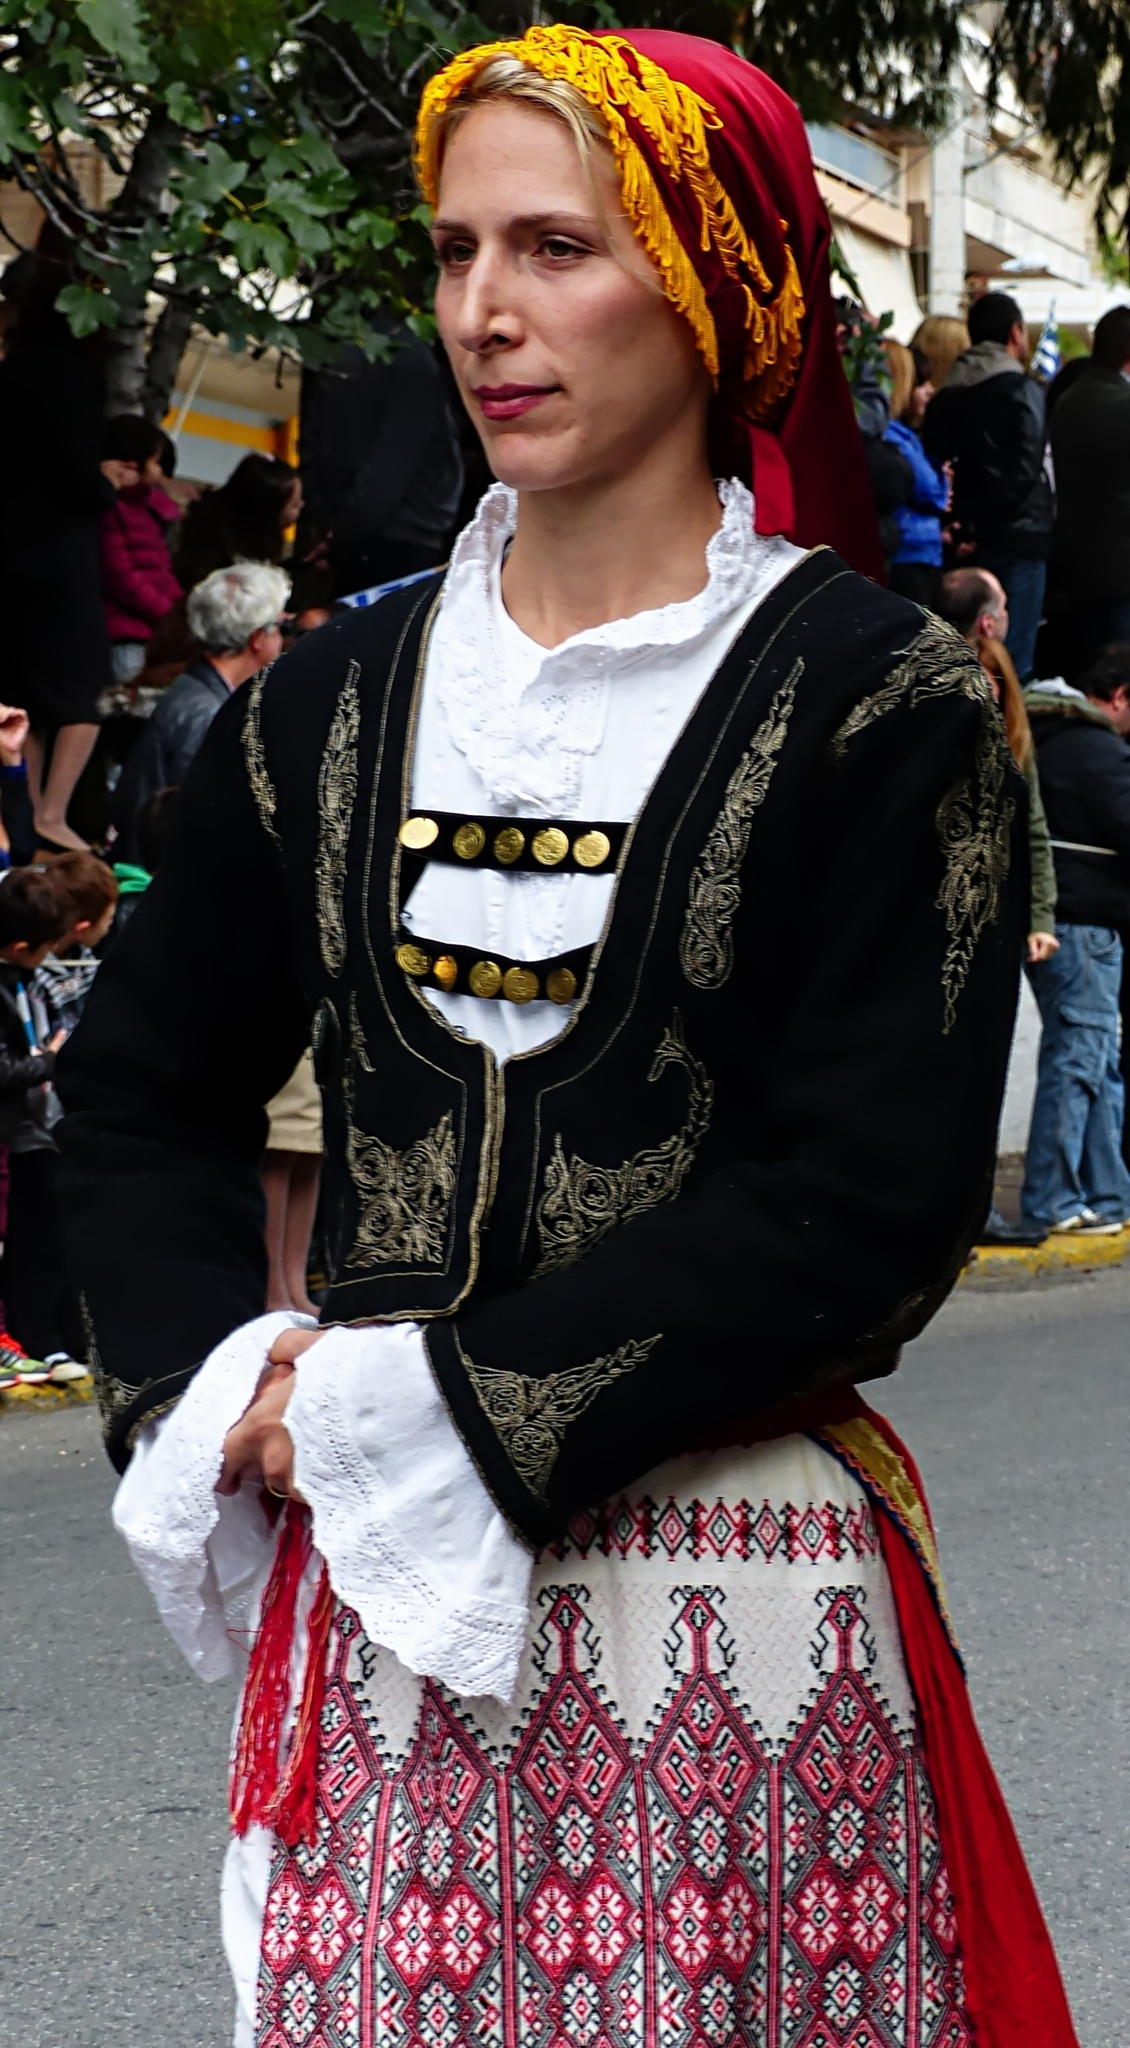 Greek Historic Costume by Costa Philippou